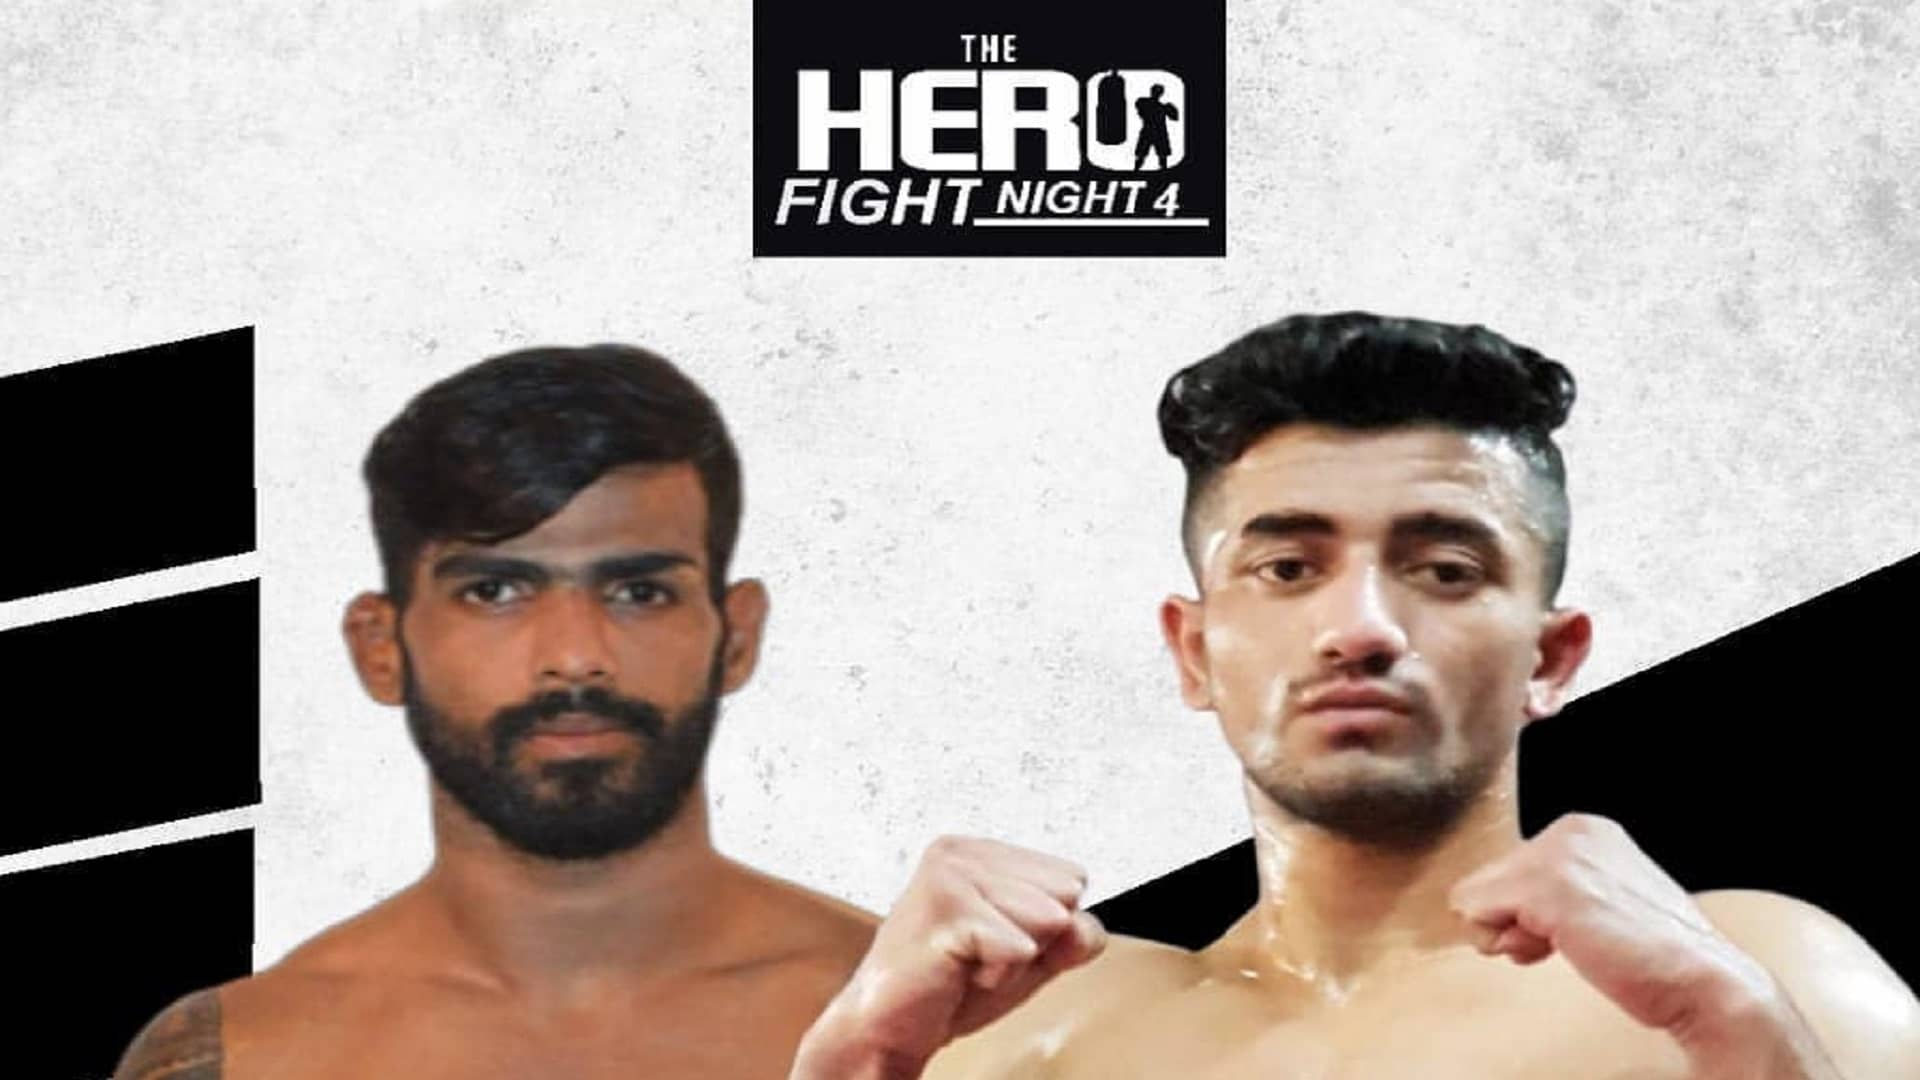 https://lockerroom.in/blog/view/Hero-Fight-Night-4-Dipesh-Rasal-Sahil-Rana